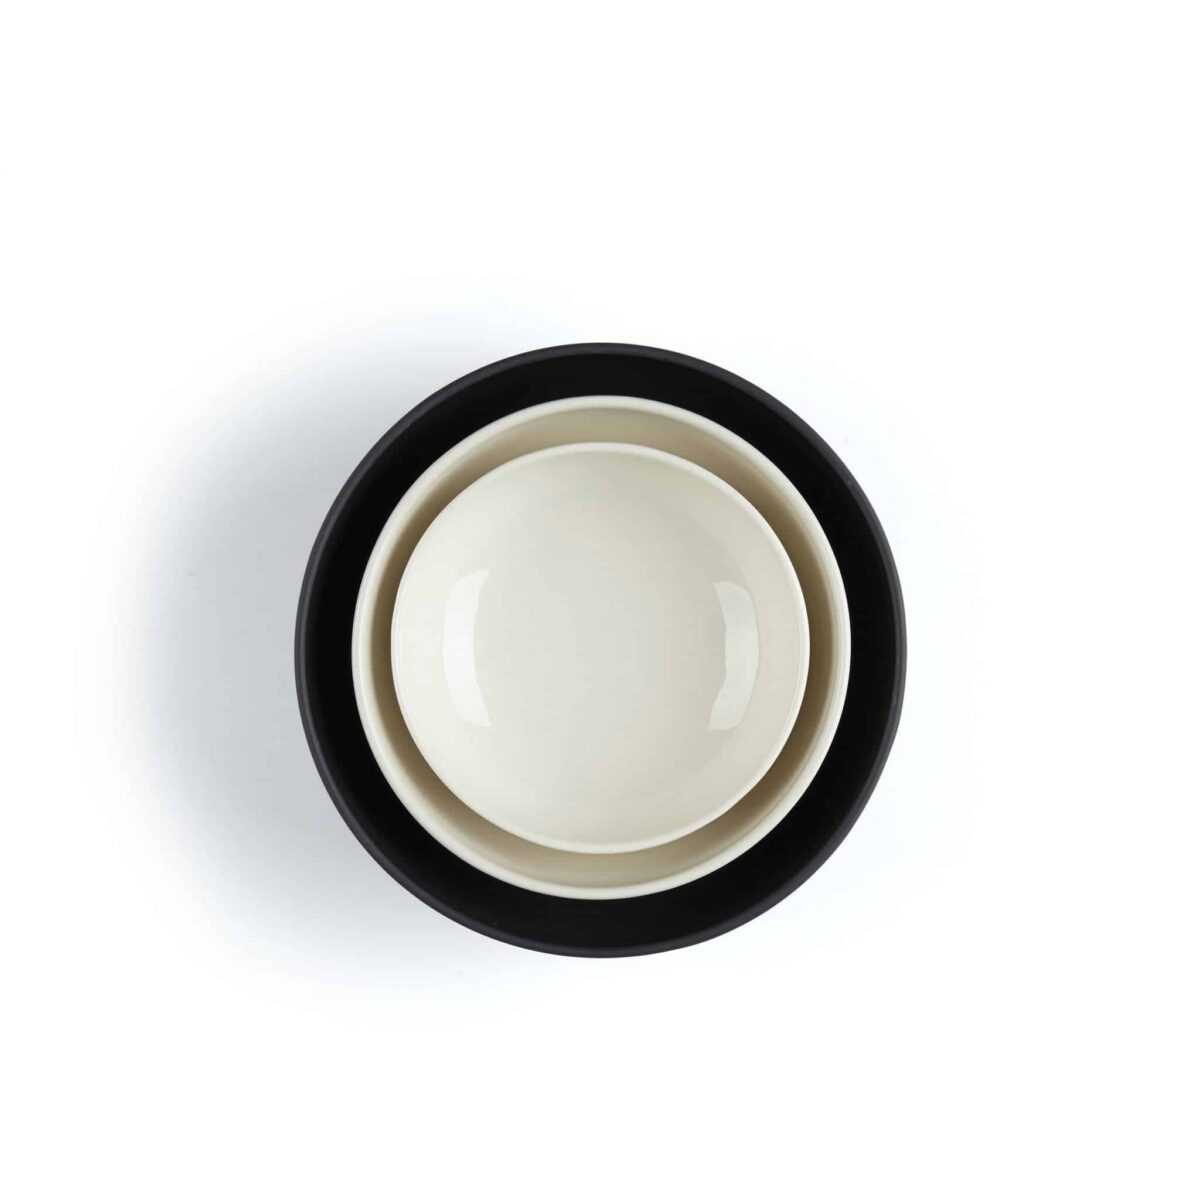 pottery-series-serving-dish-black-another-country-003